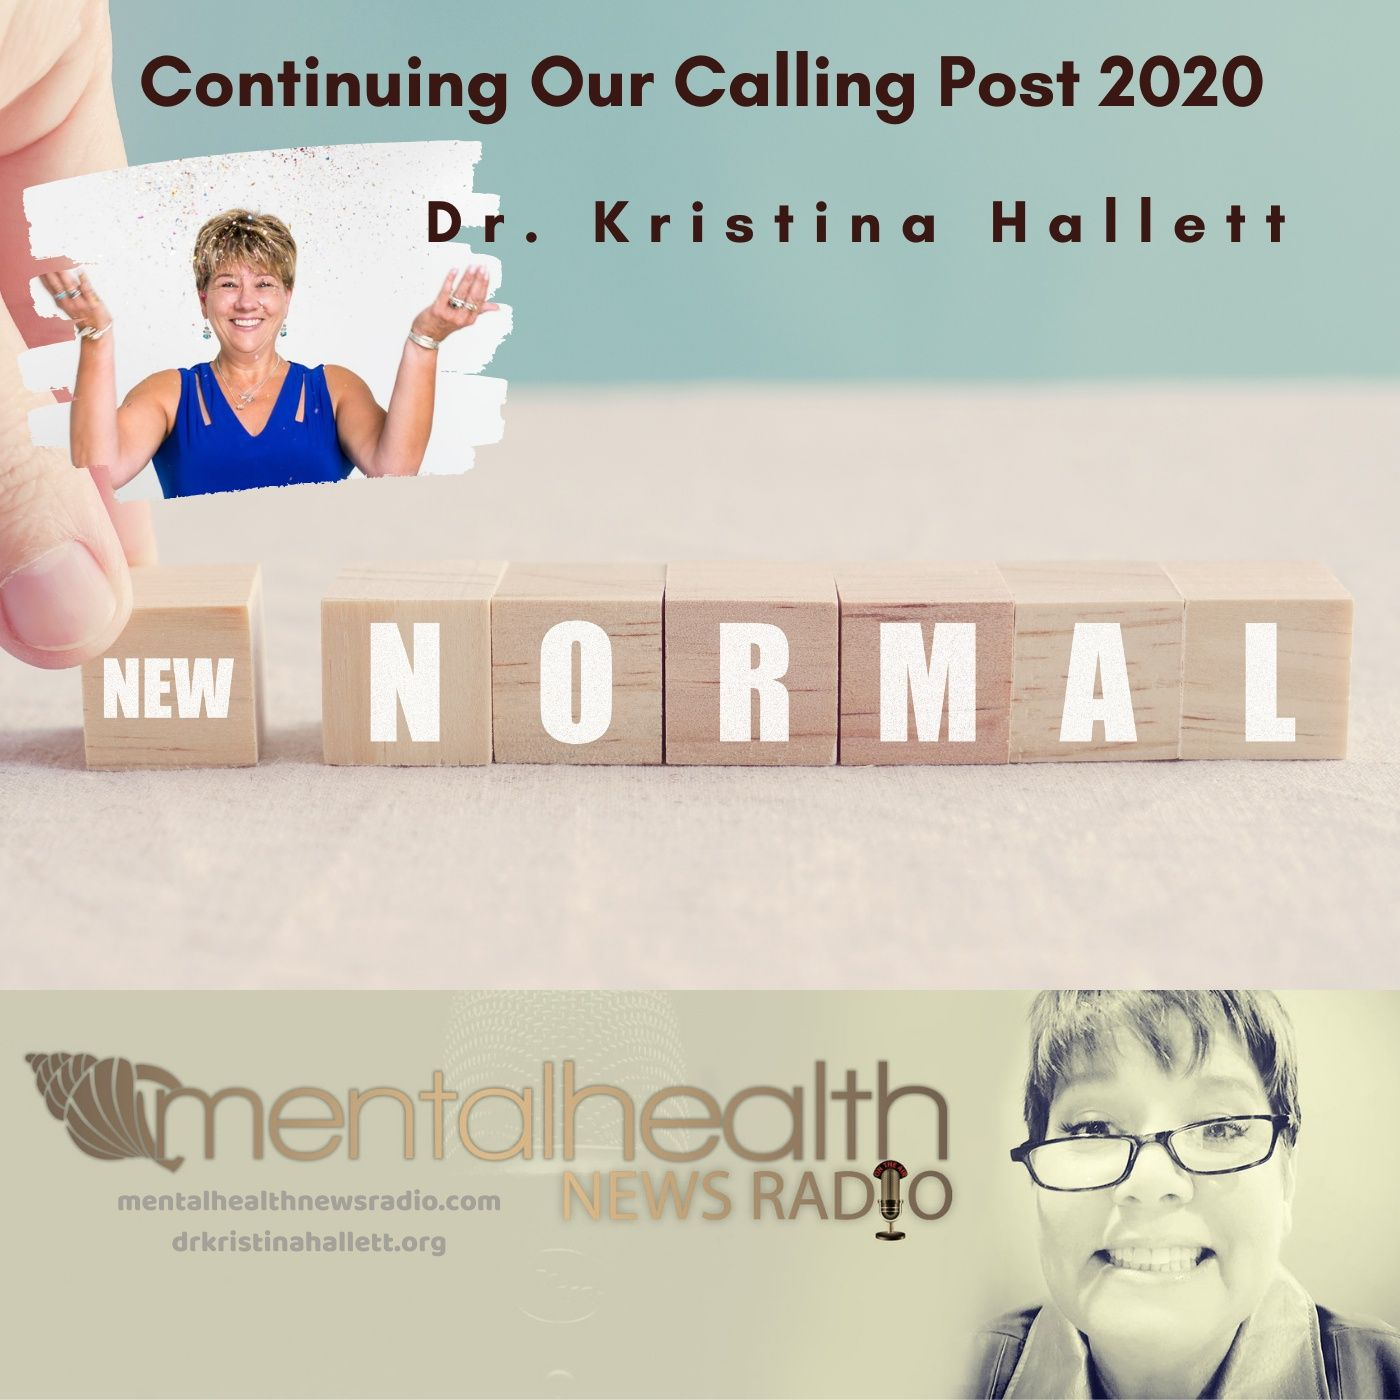 Mental Health News Radio - Continuing Our Calling Post 2020